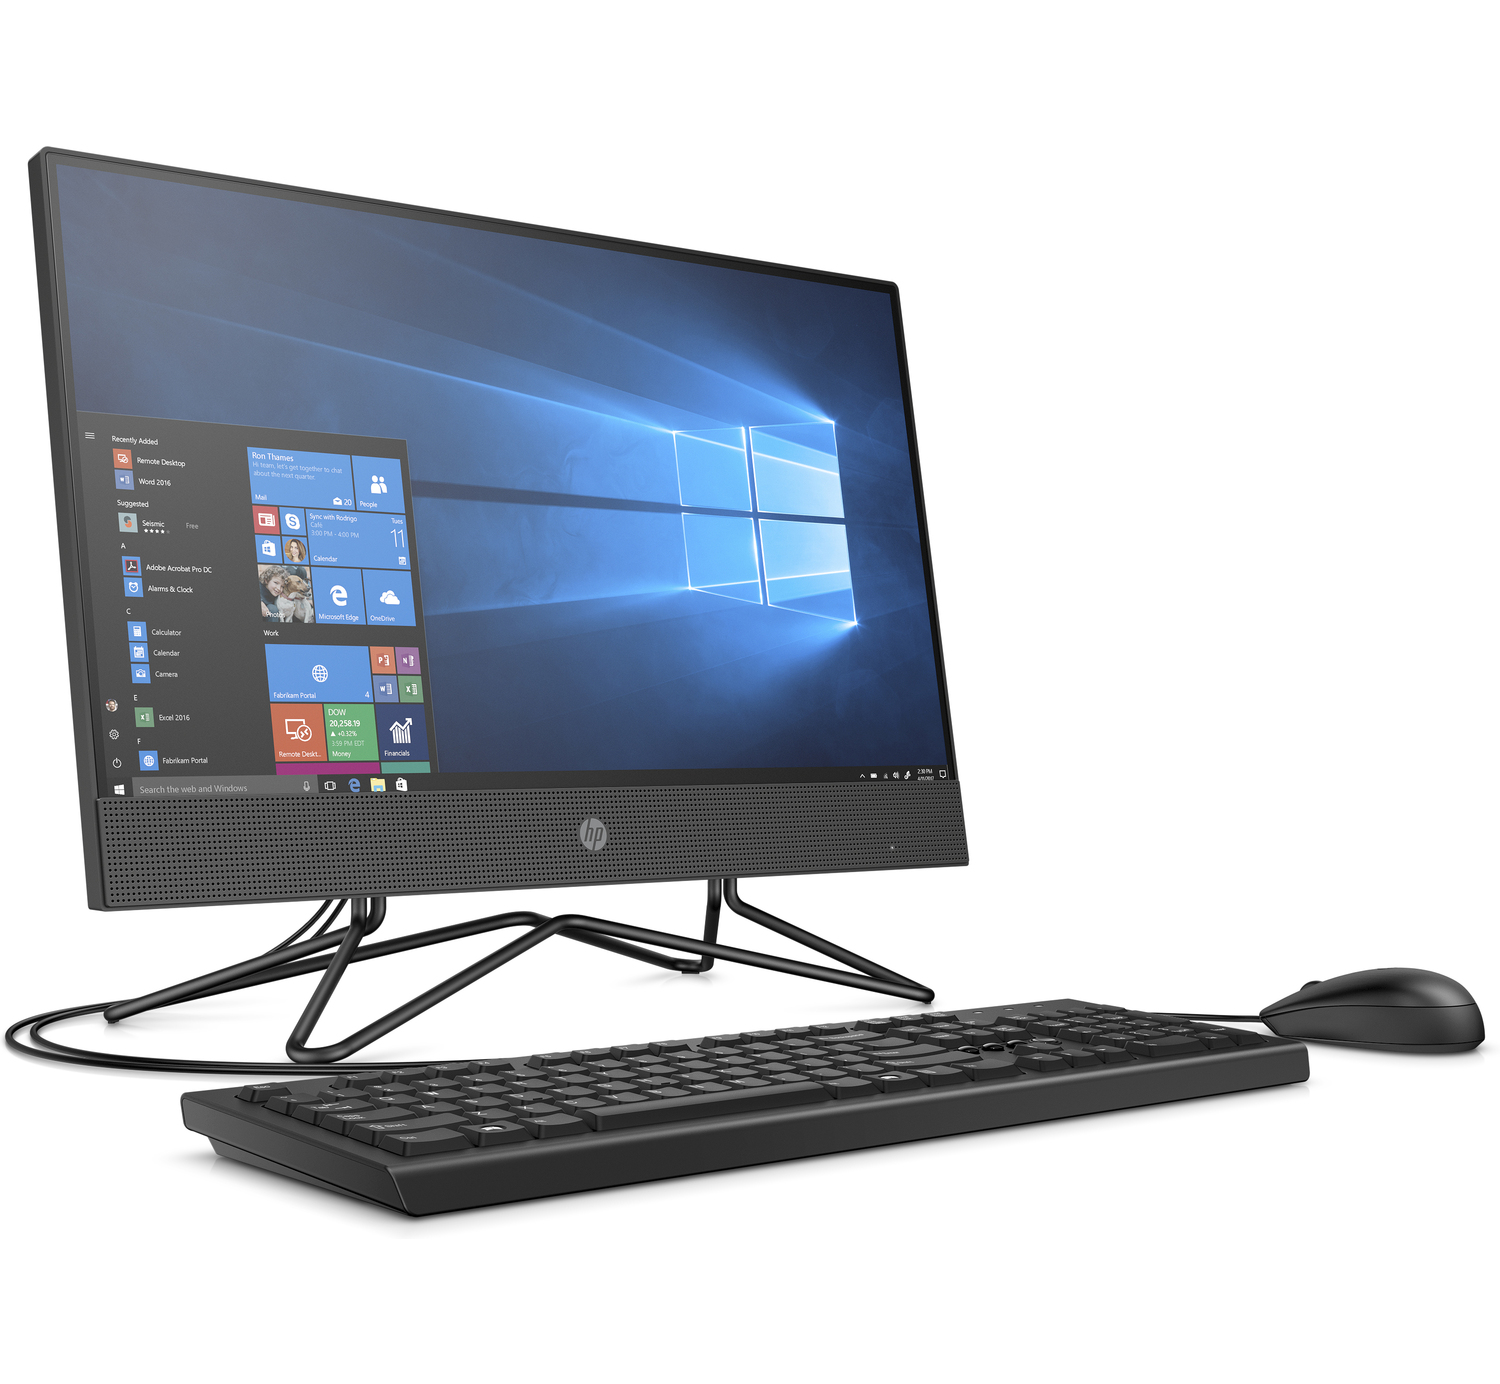 HP 200 Pro G4 22 All-in-One PC 2W952PA 21.5inch FHD Core i5-10210U 8GB DDR4 RAM 1TB HDD Win10 Pro With ODD